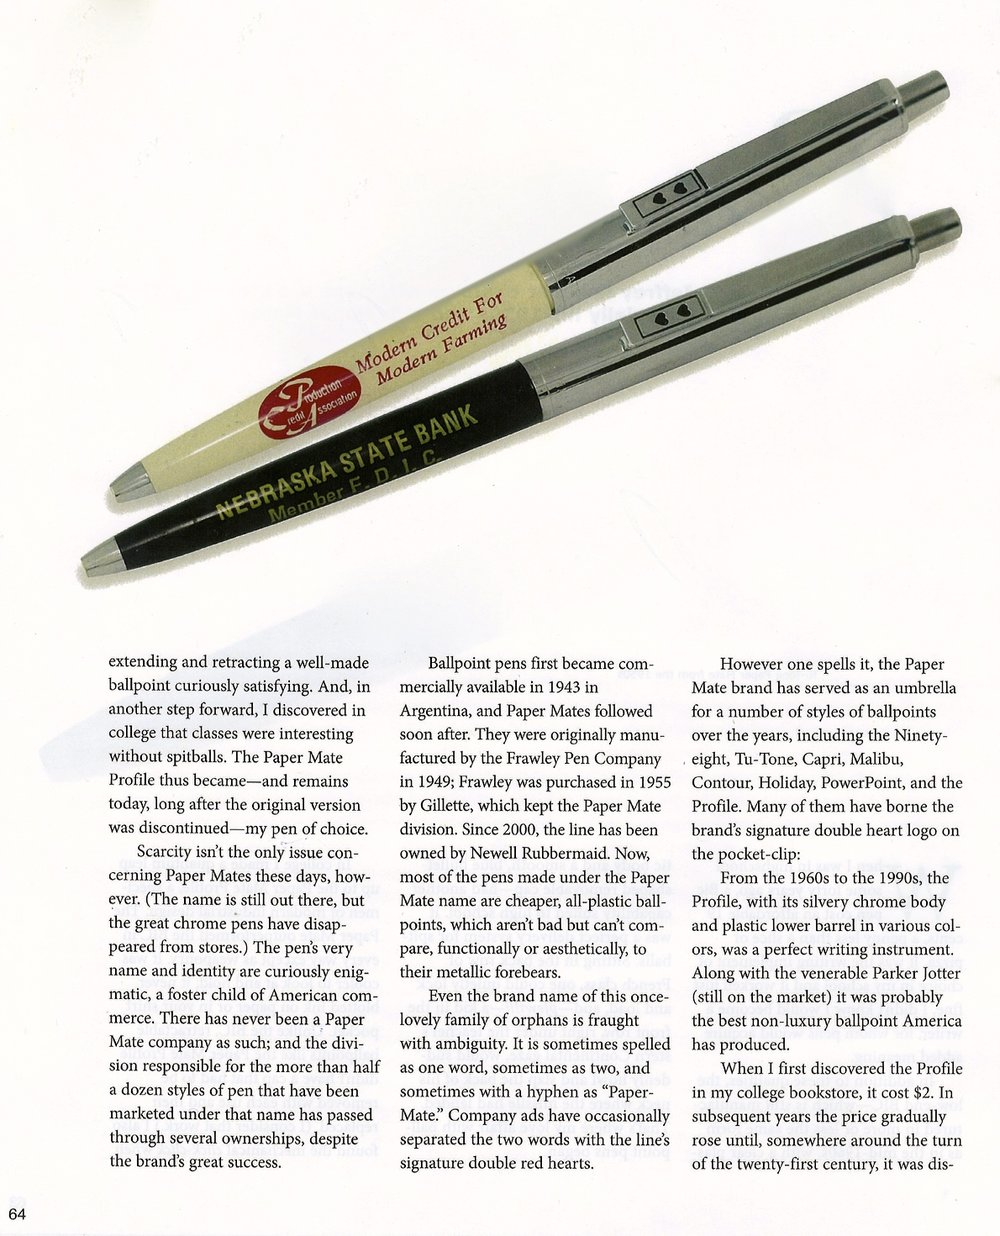 penworld-article-3.jpg